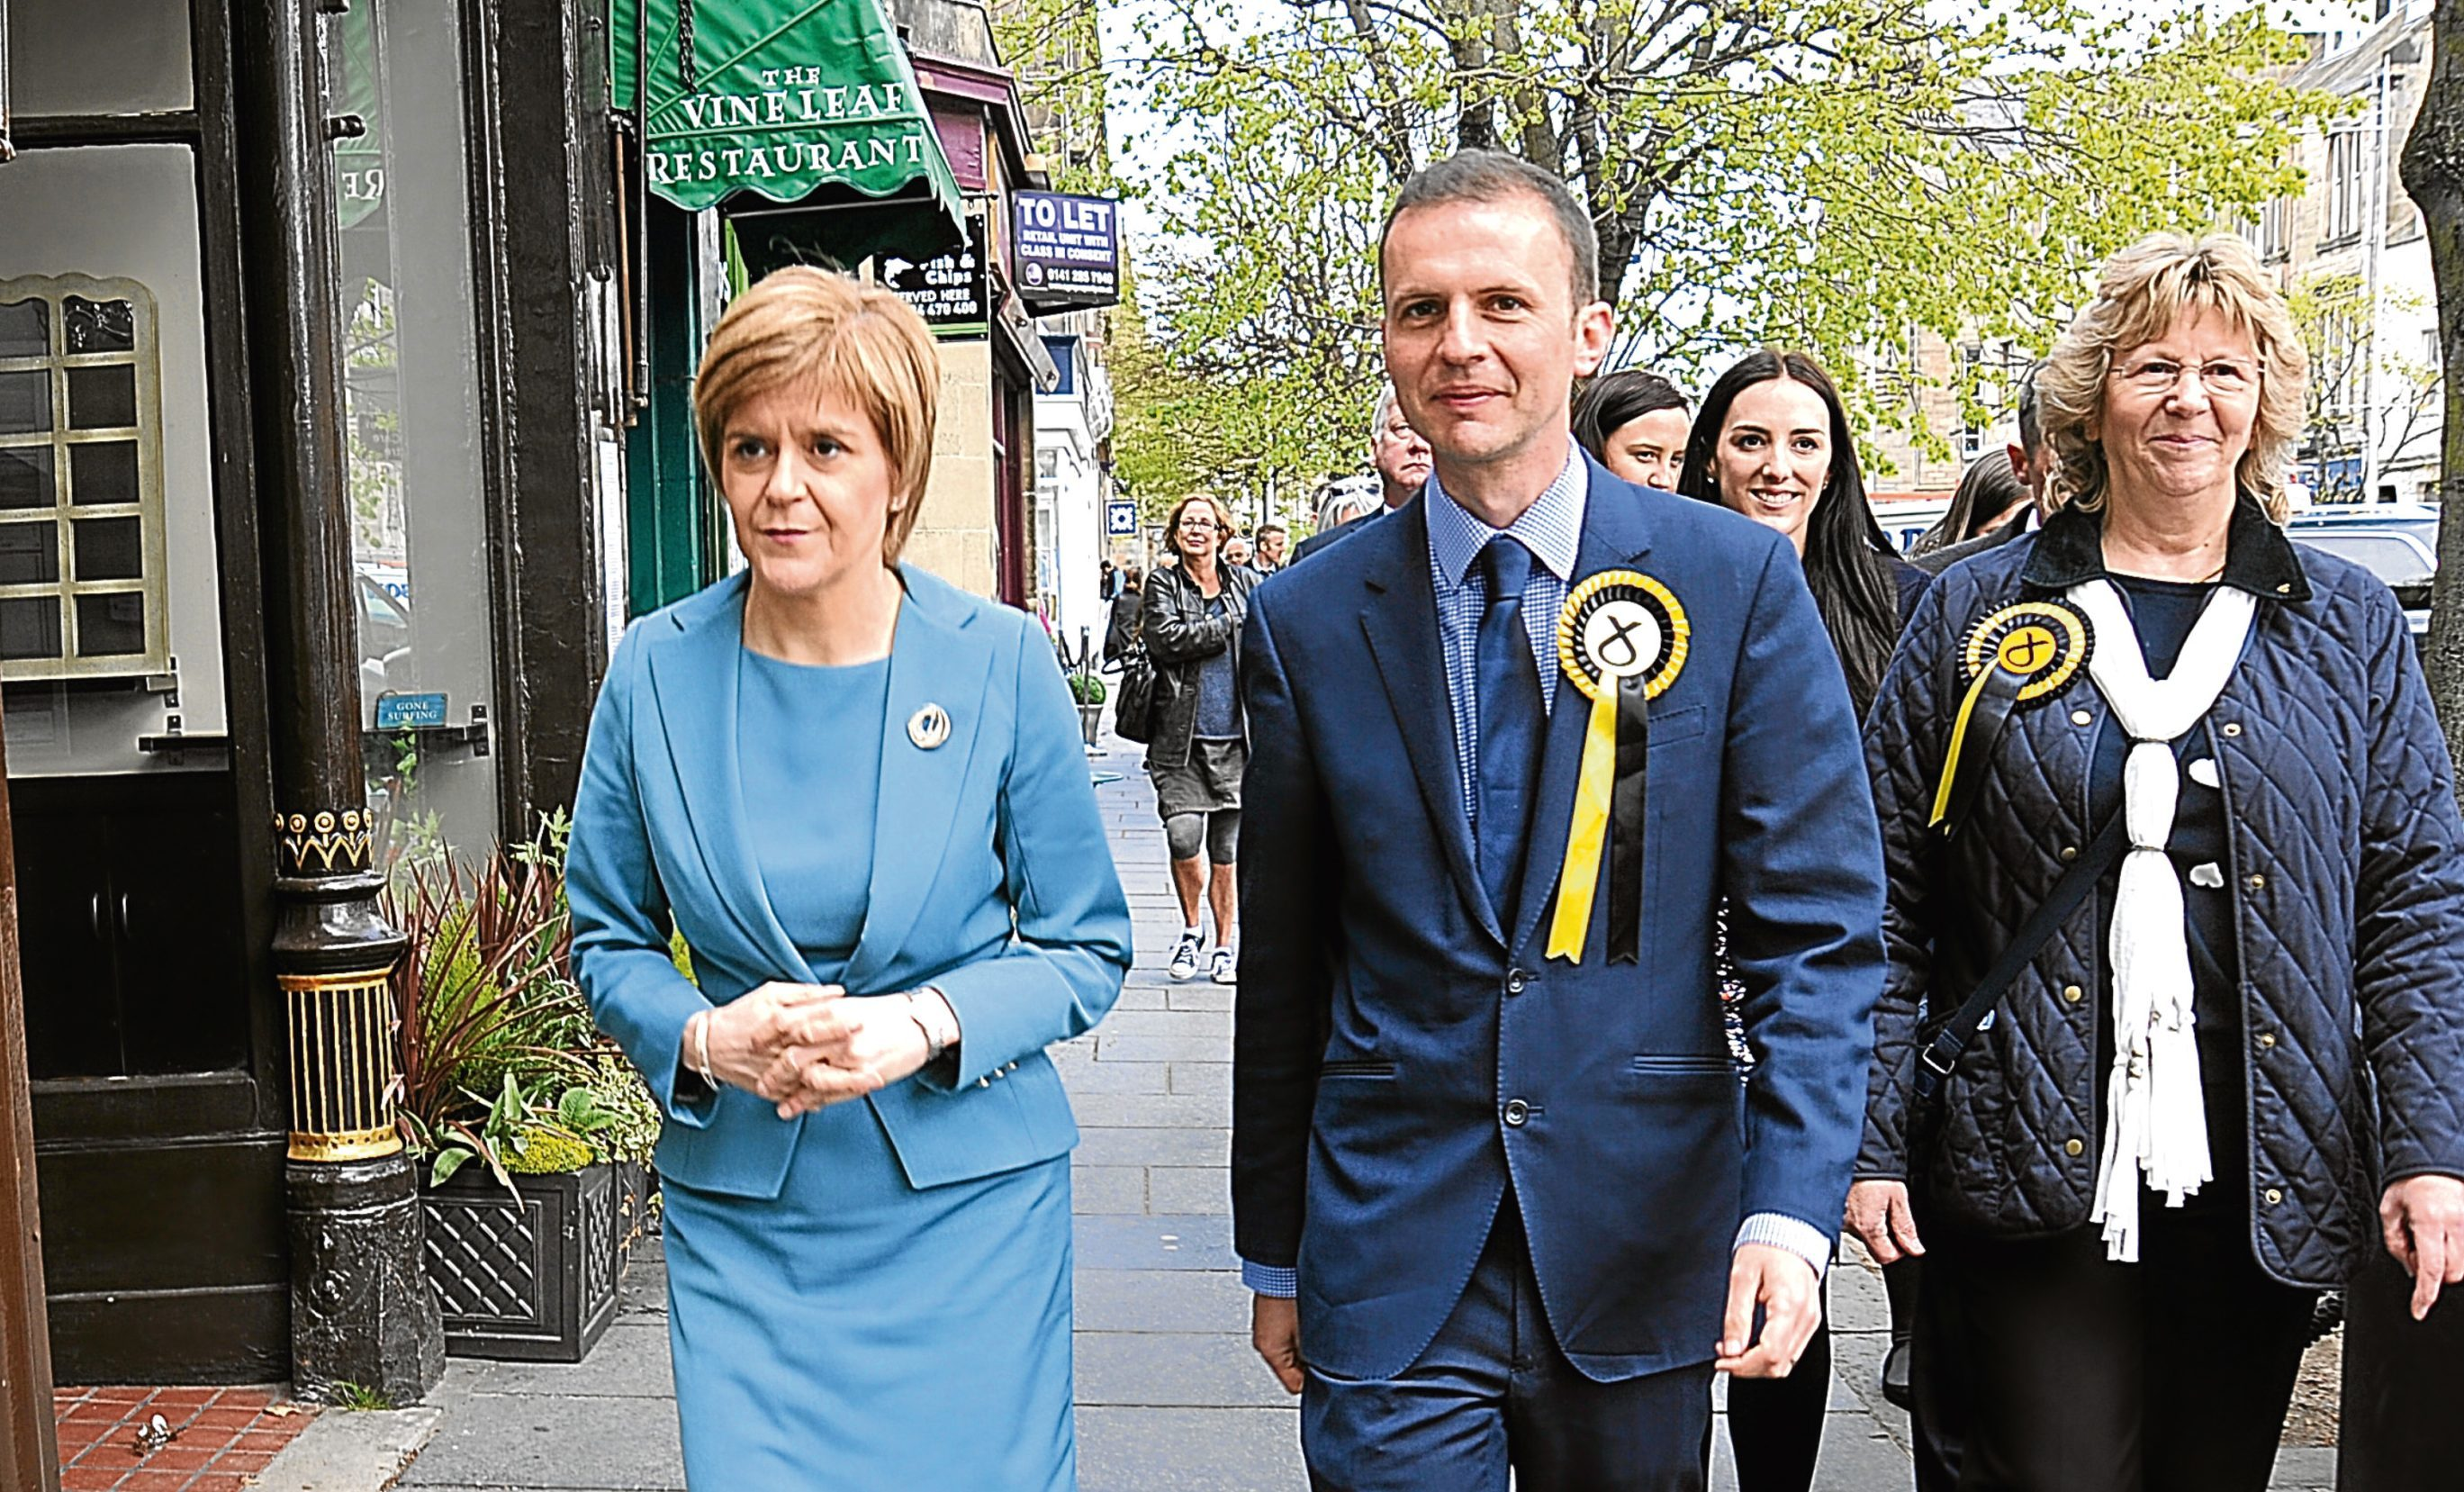 Scotlands first minister Nicola Sturgeon in St Andrews with Candidate Stephen Gethins. 1 May 15